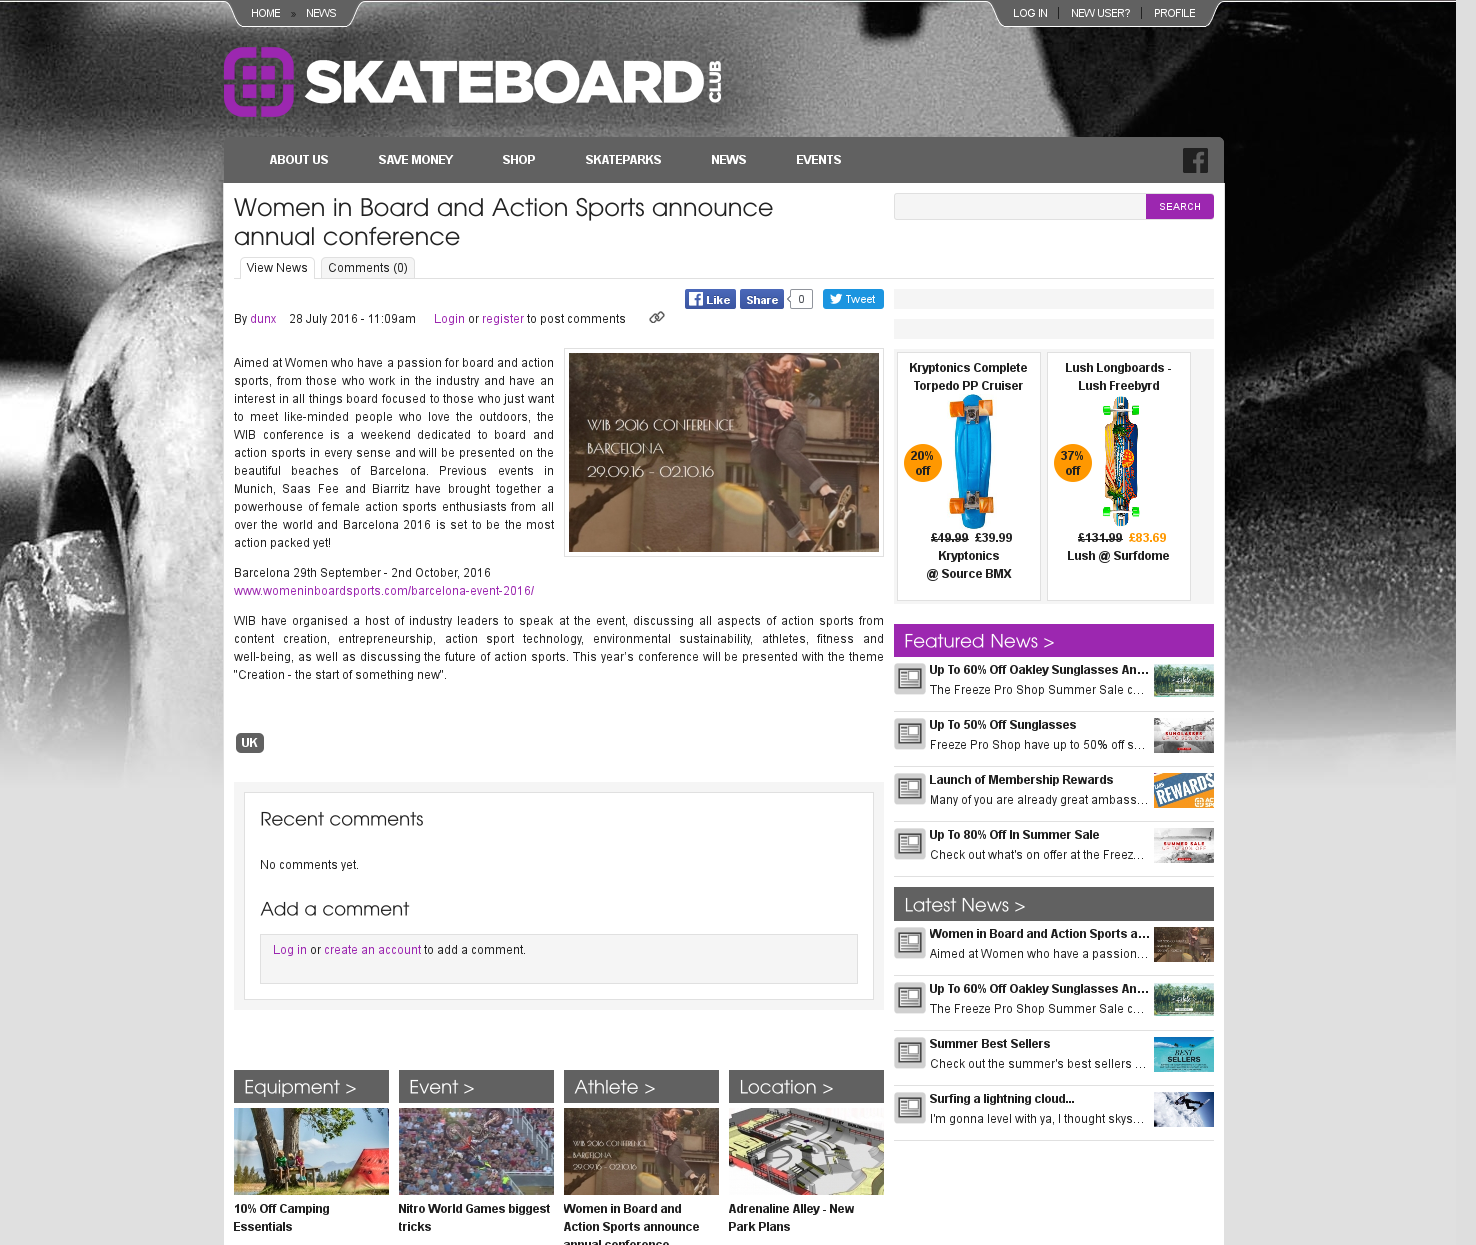 Skateboard club UK